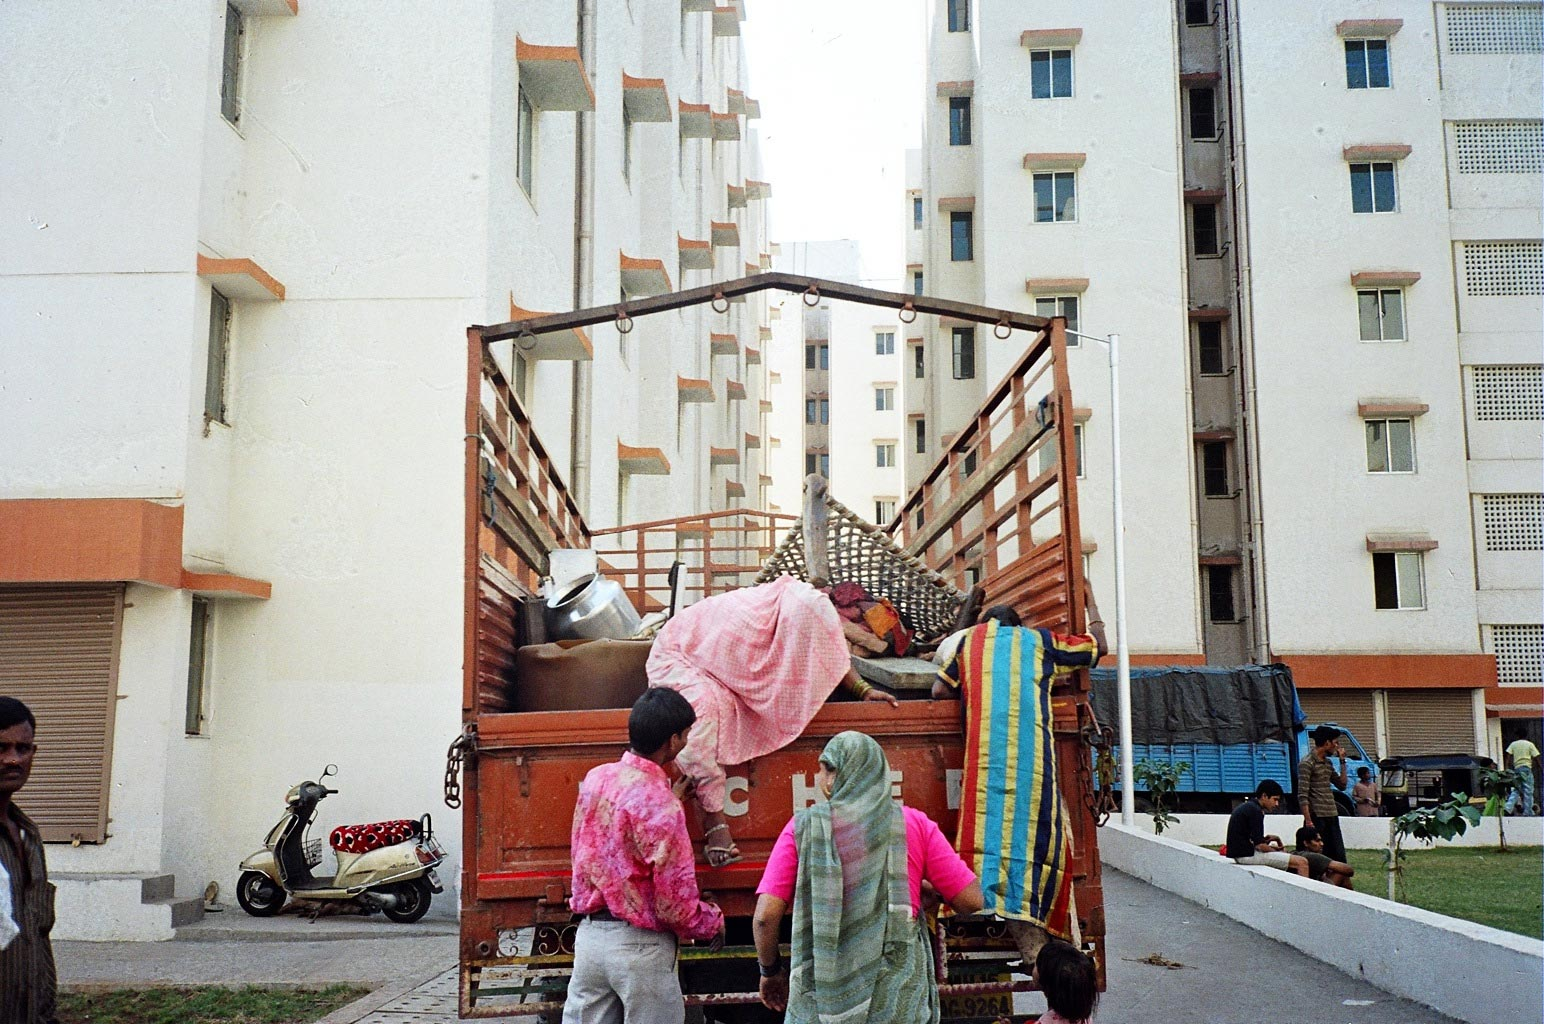 People moving into their new homes at Vashi Naka, Mumbai from settlements near the Railway tracks as part of the resettlement and rehabilitation program under the Mumbai Urban Transport Project (MUTP).